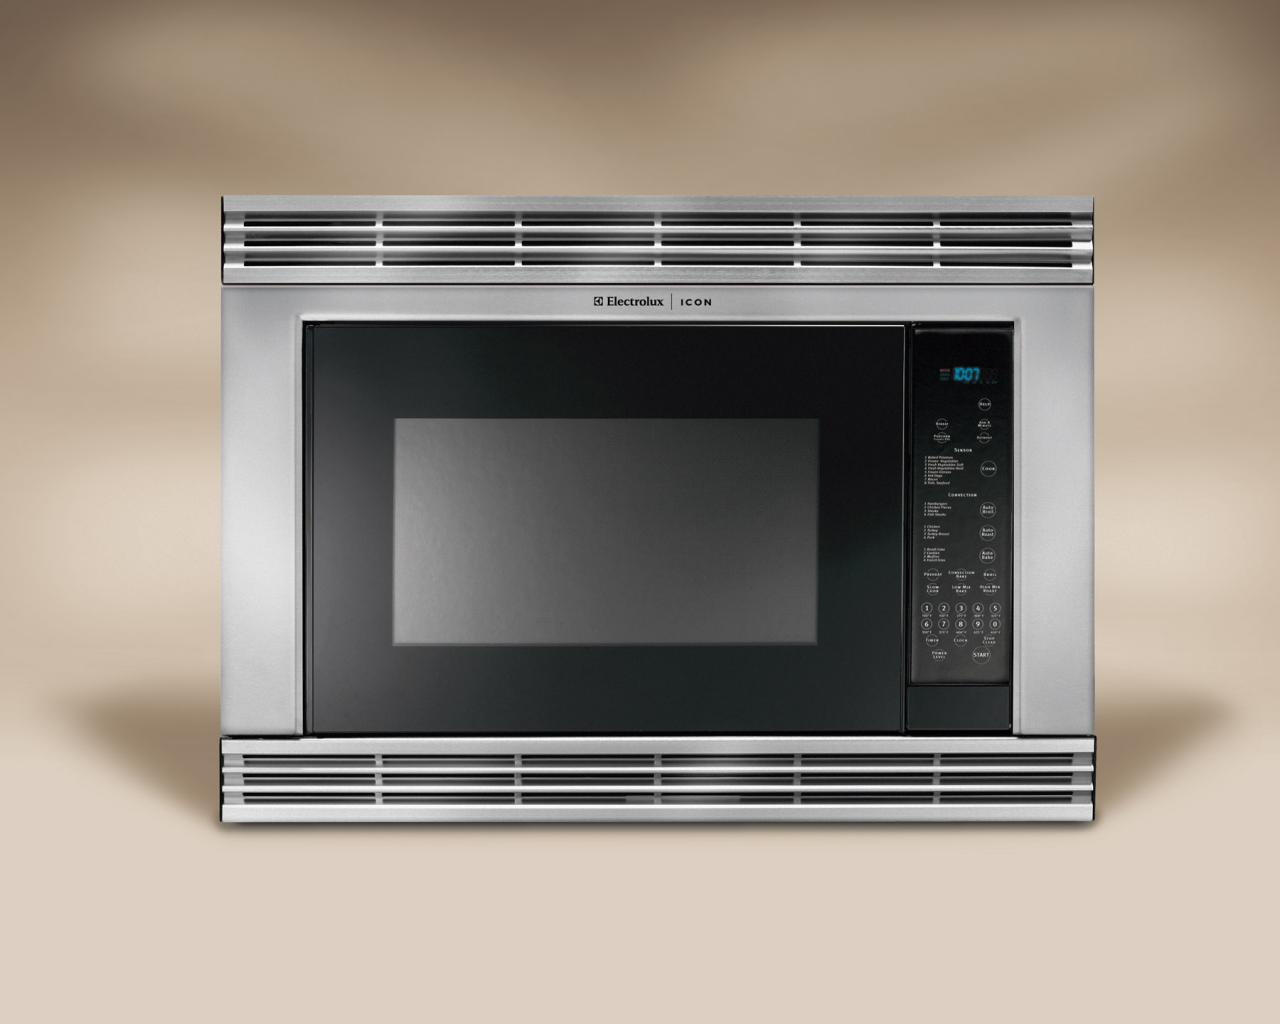 Electrolux Oven Wiring Diagram Schematic Diagrams Microwave E30m075hps Icon Trusted Frigidaire Designer